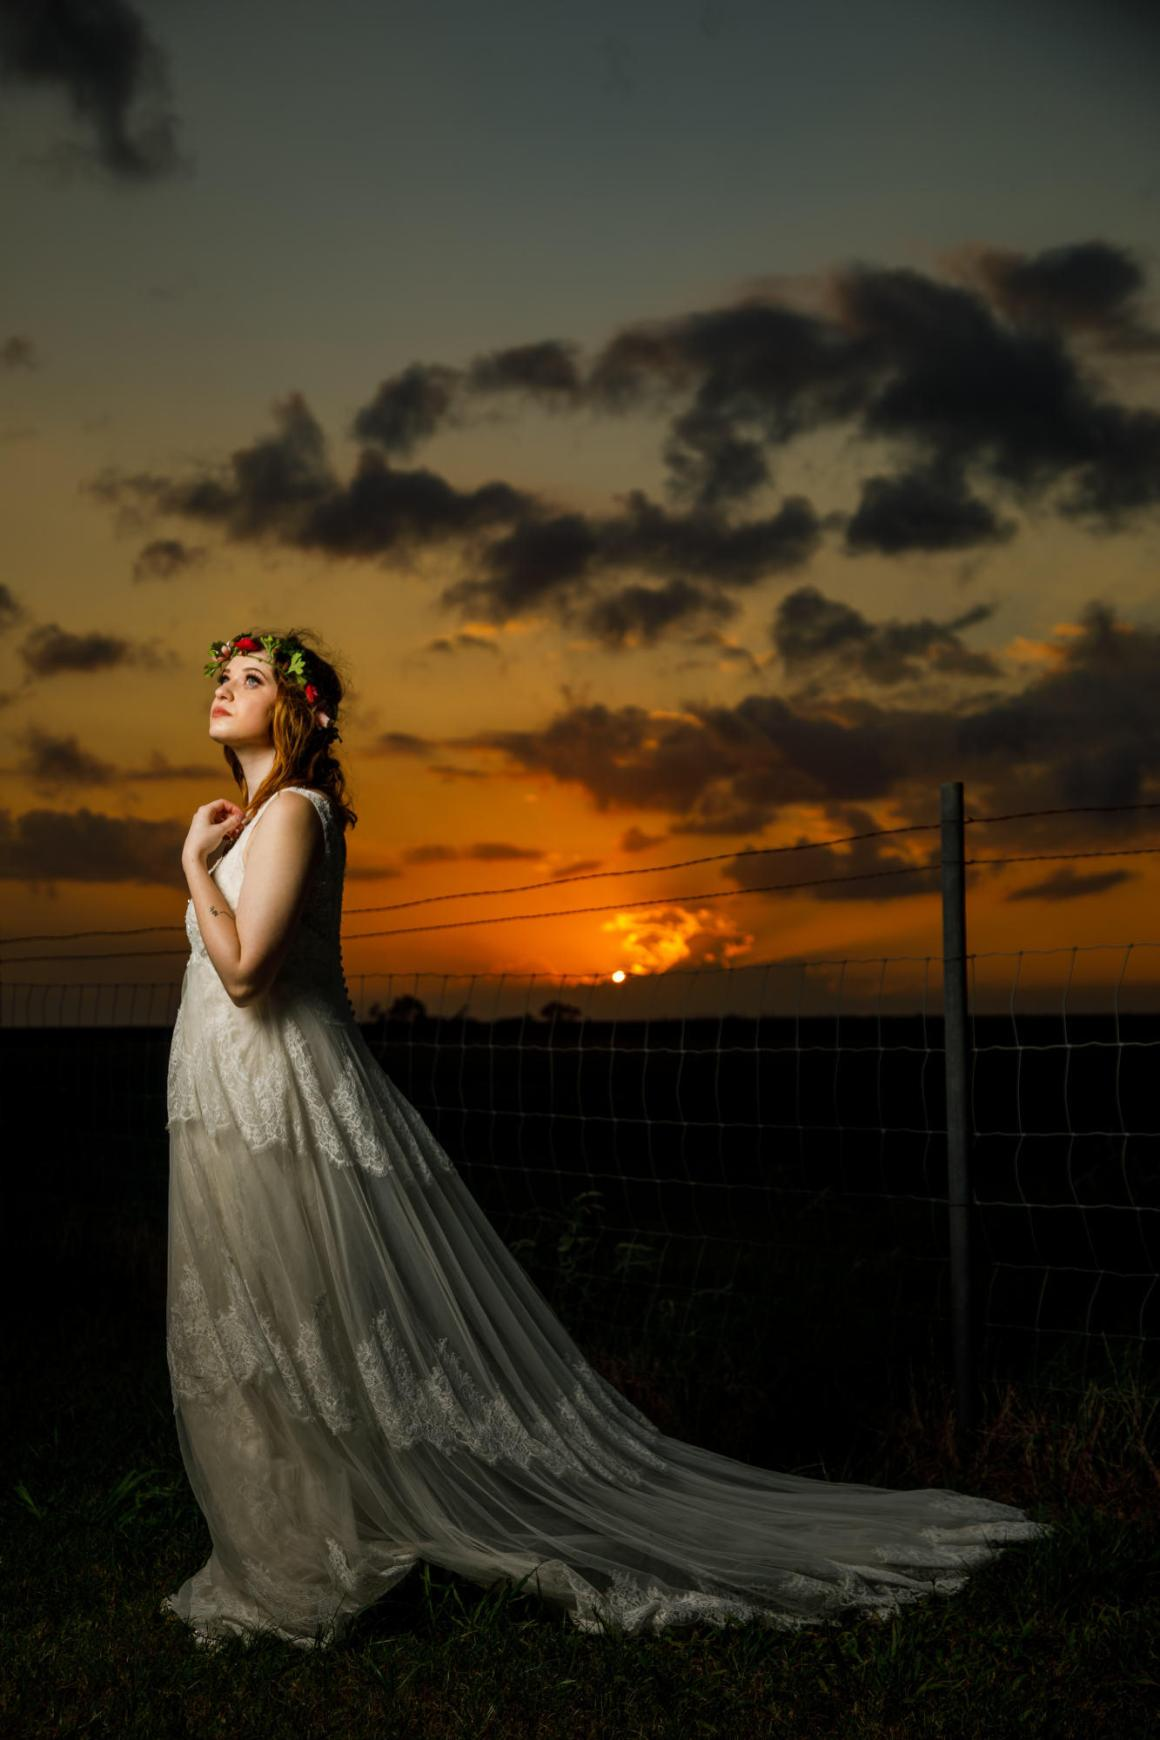 Austin and Meagan Sunset Wedding Portraits at their Old Fashion Wedding near San Antonio, Tx.